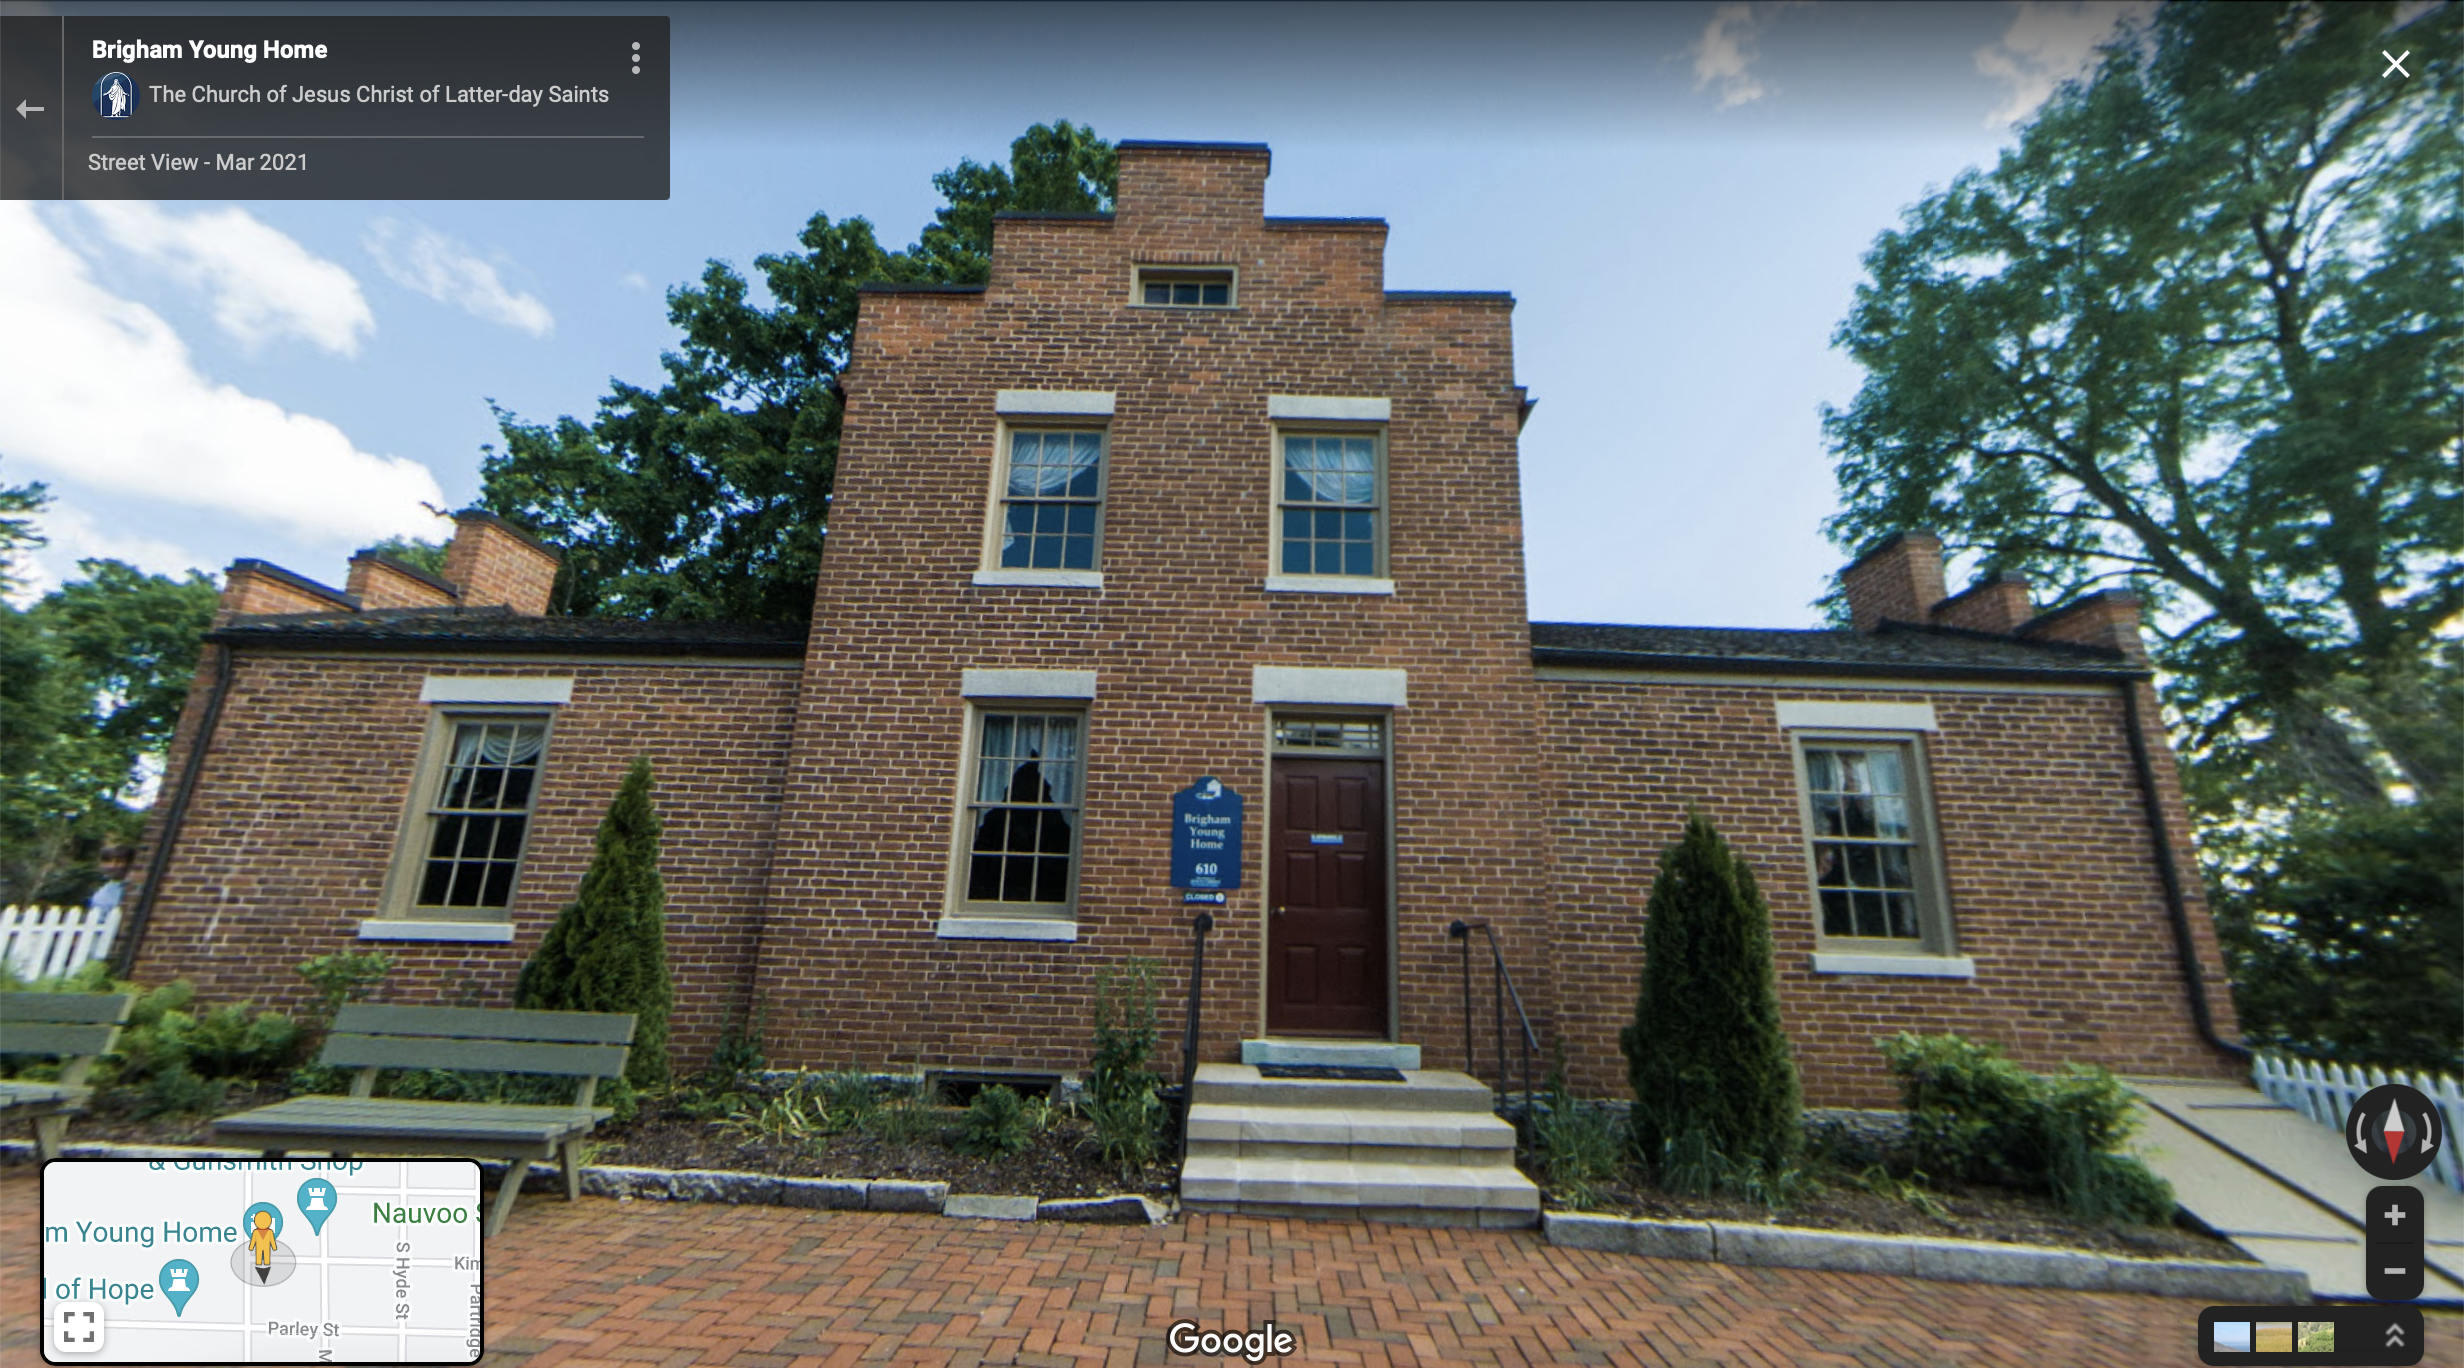 Screenshot of the Google Maps 360 view of the Brigham Young Home